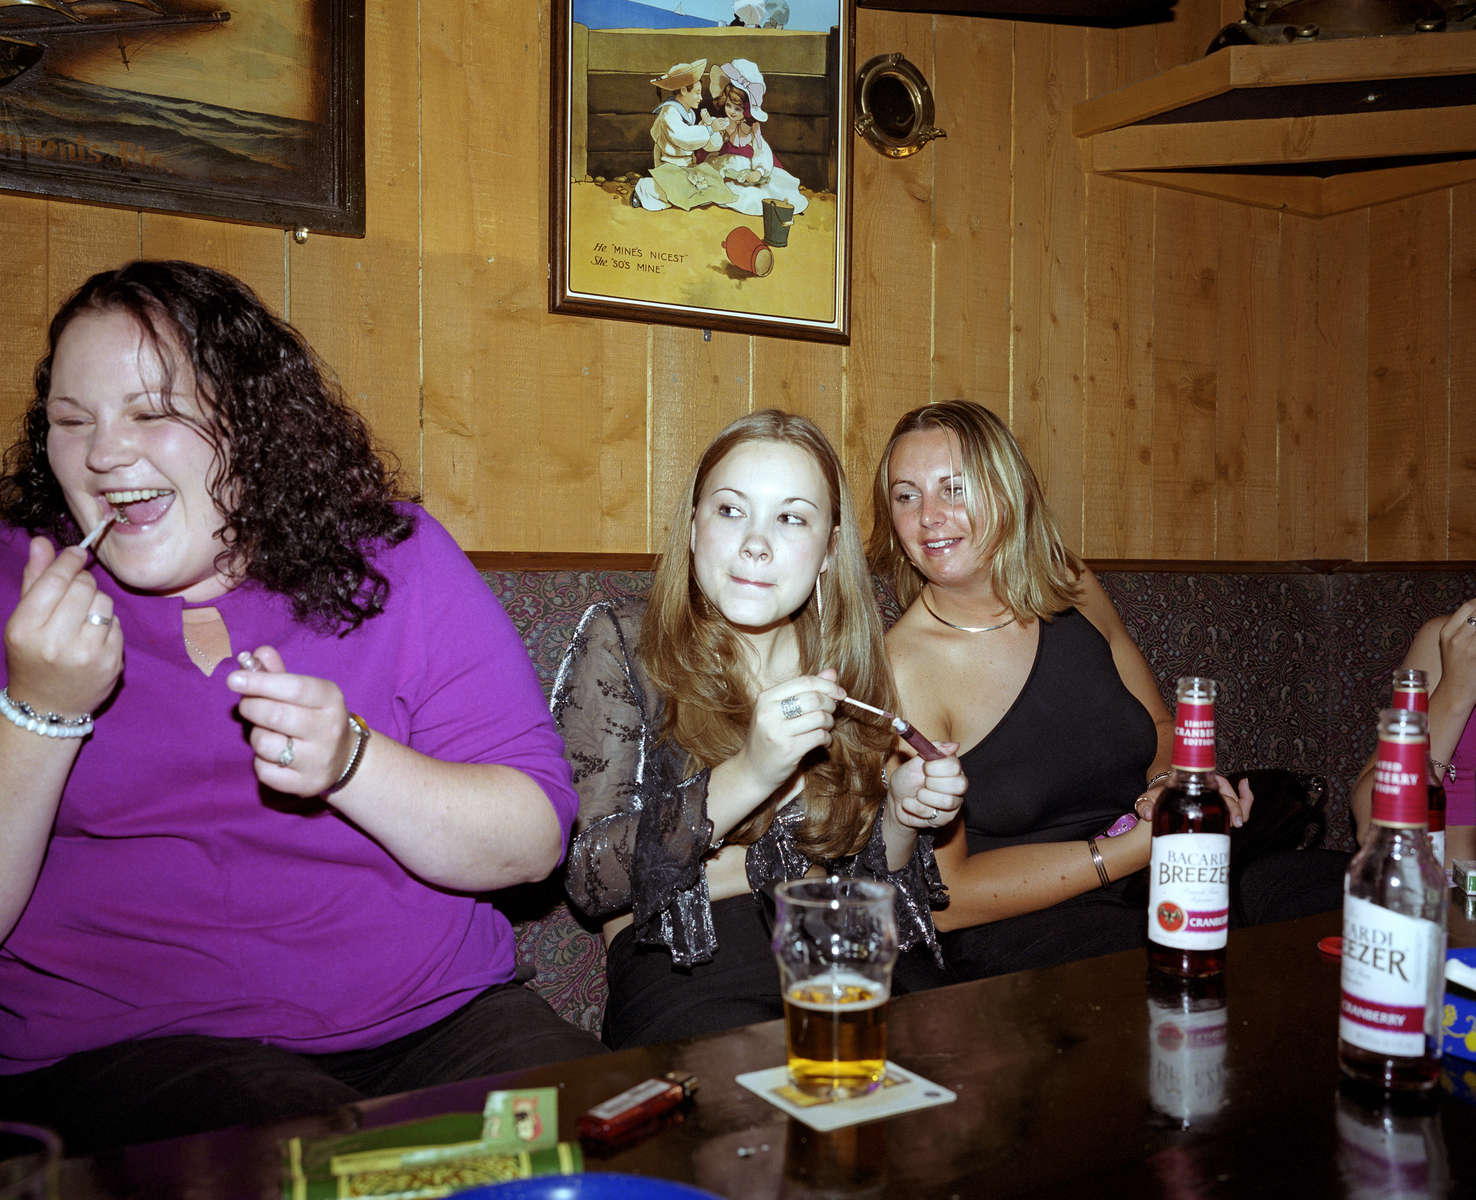 Young women put on lipgloss in a pub at the beginning of a night out in Newquay. July 2001